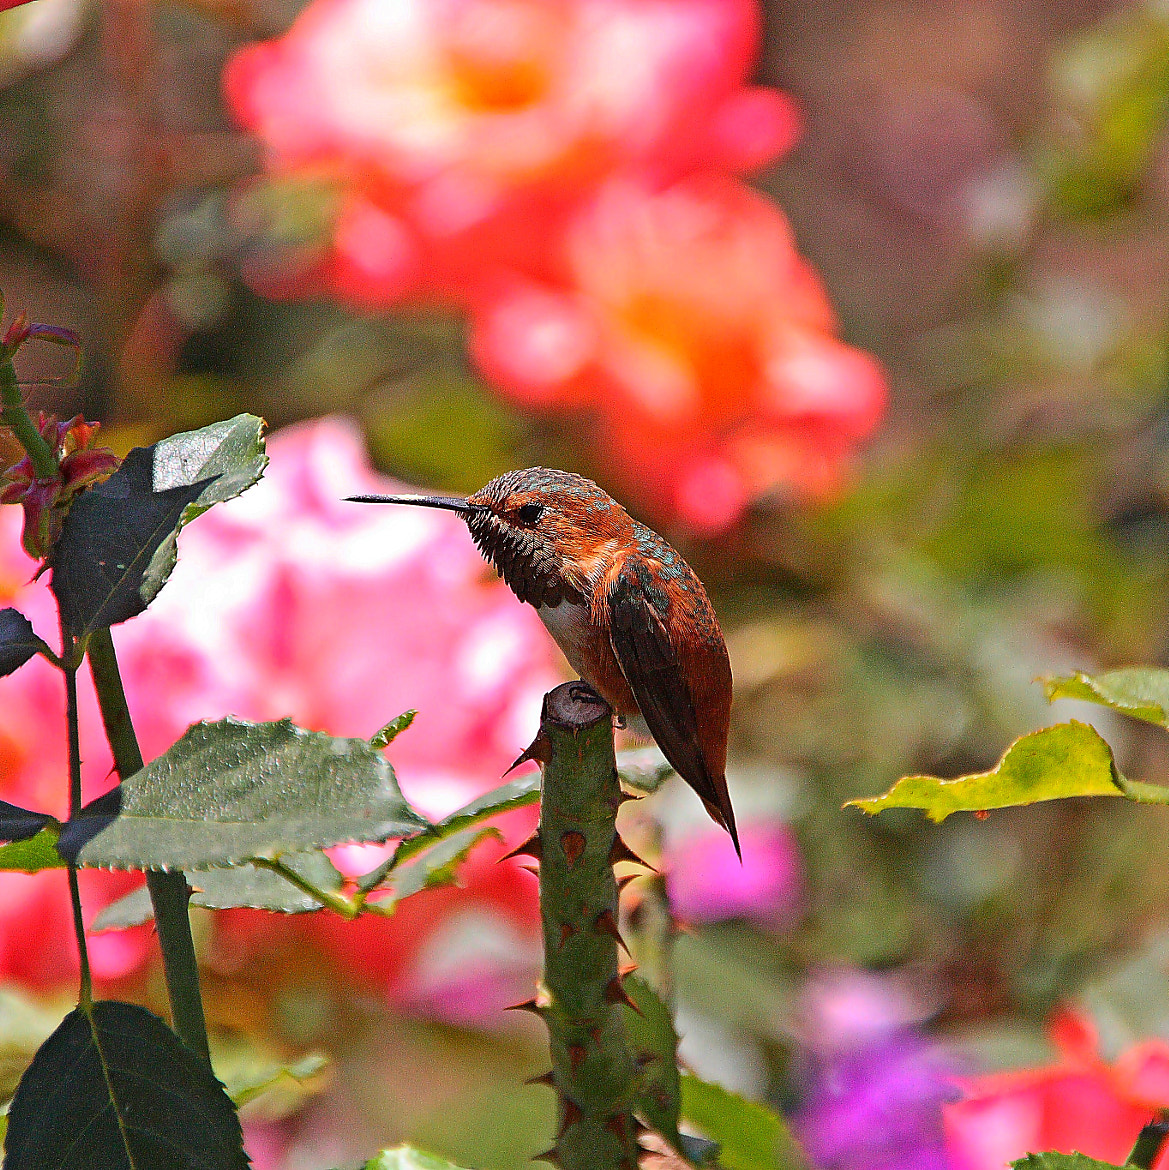 Photograph Slouching Hummingbird by Teresa M on 500px